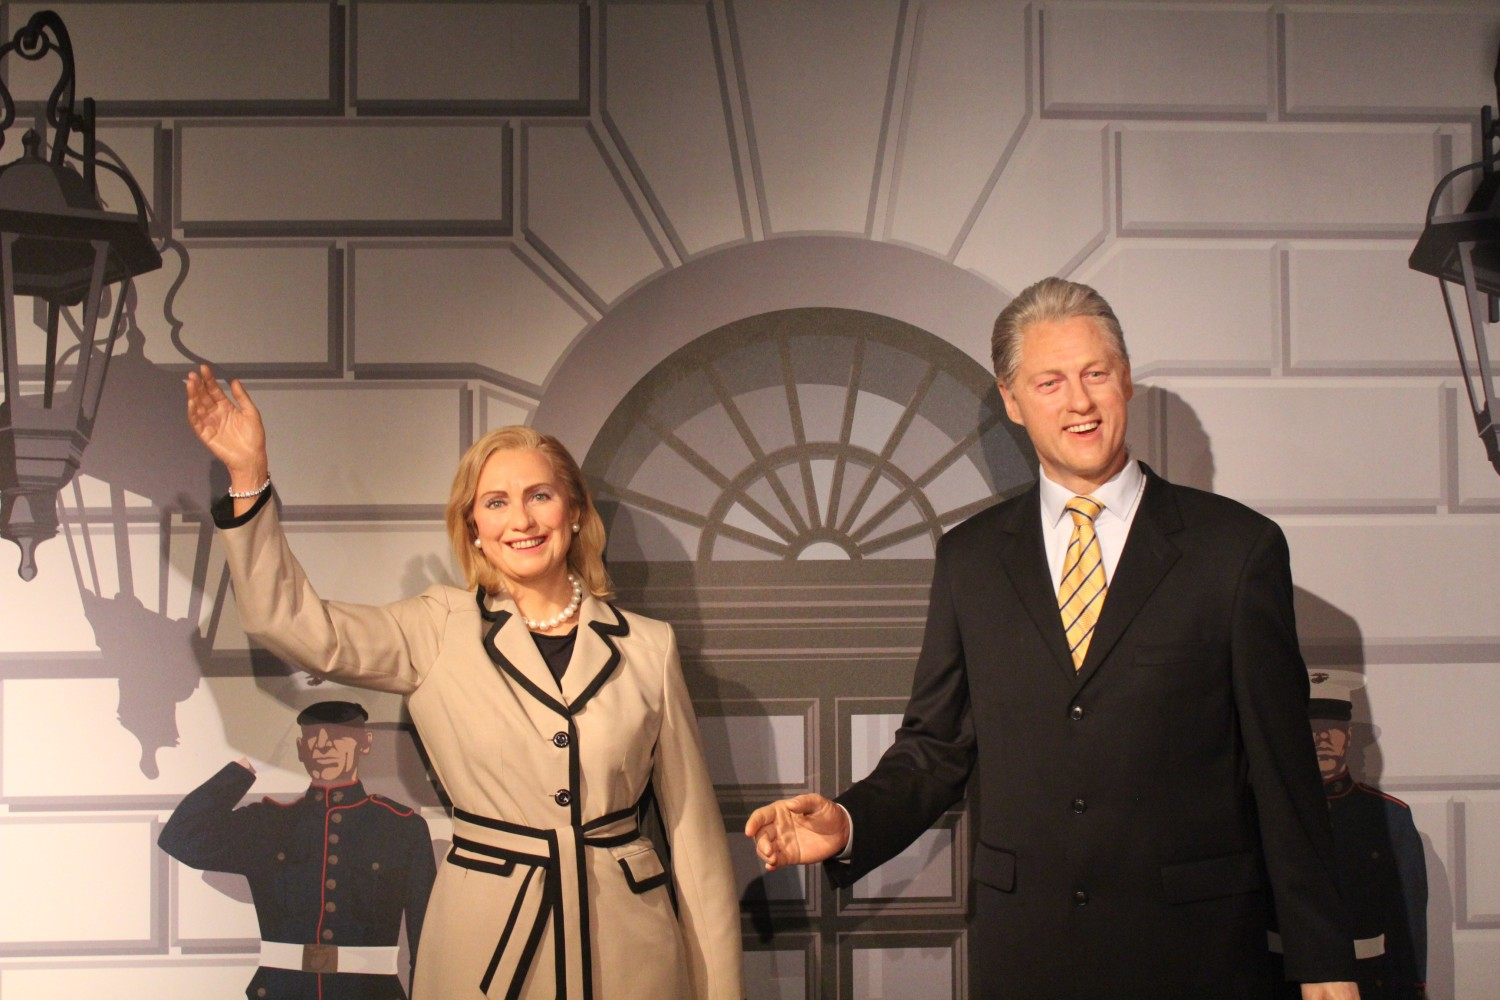 Madame Tussauds Washington D.C. Clinton Wax Figure